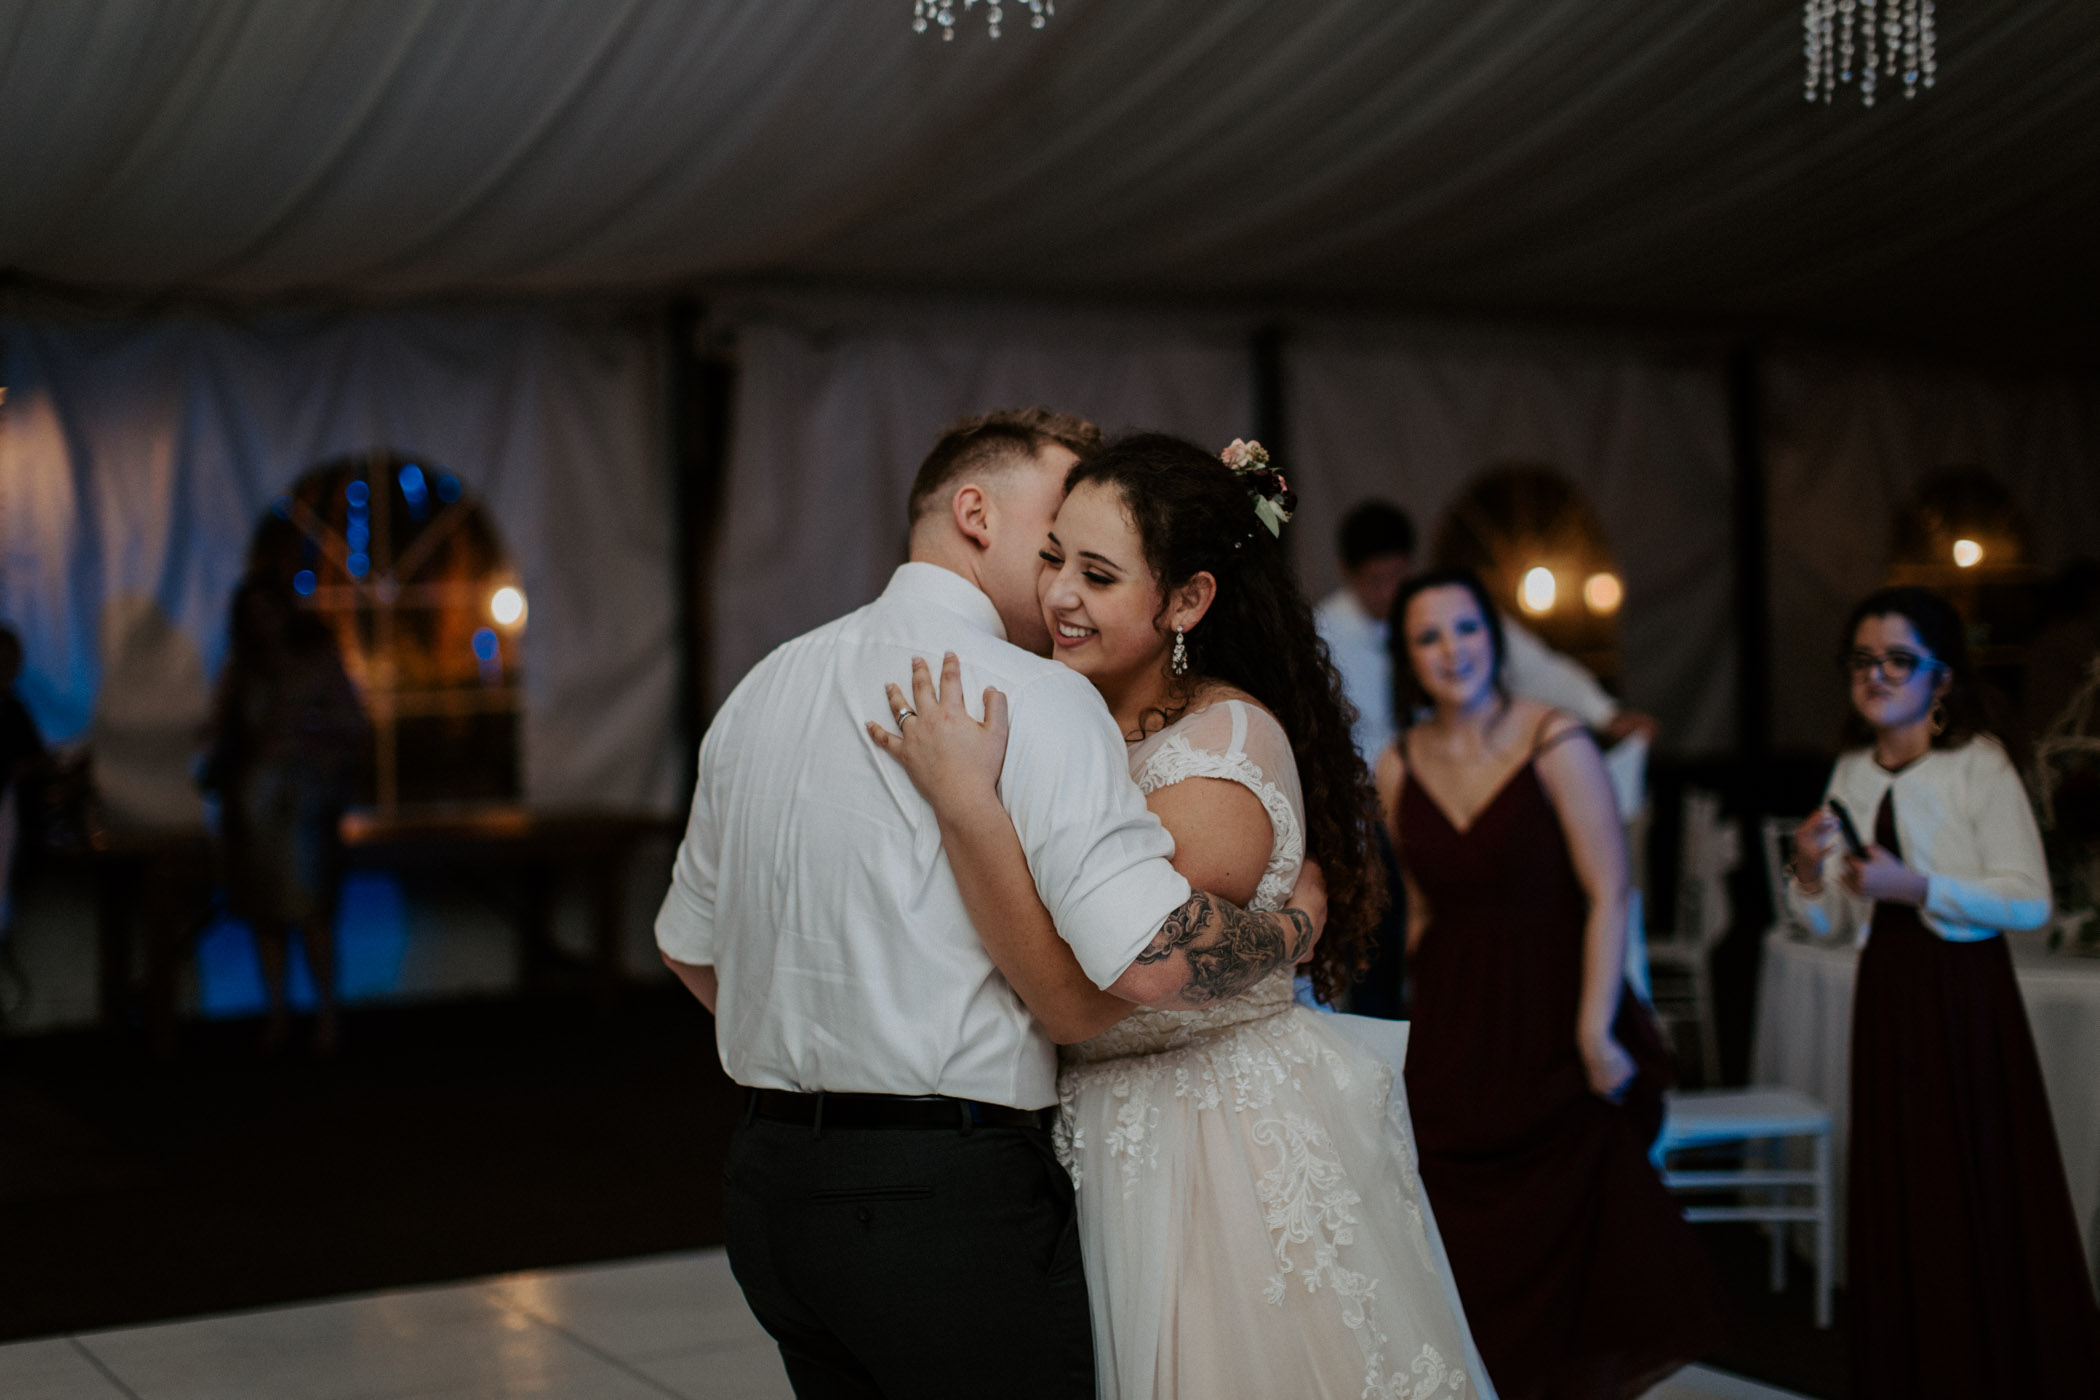 bride and groom golding each other and dancing at the end of their wedding day in California